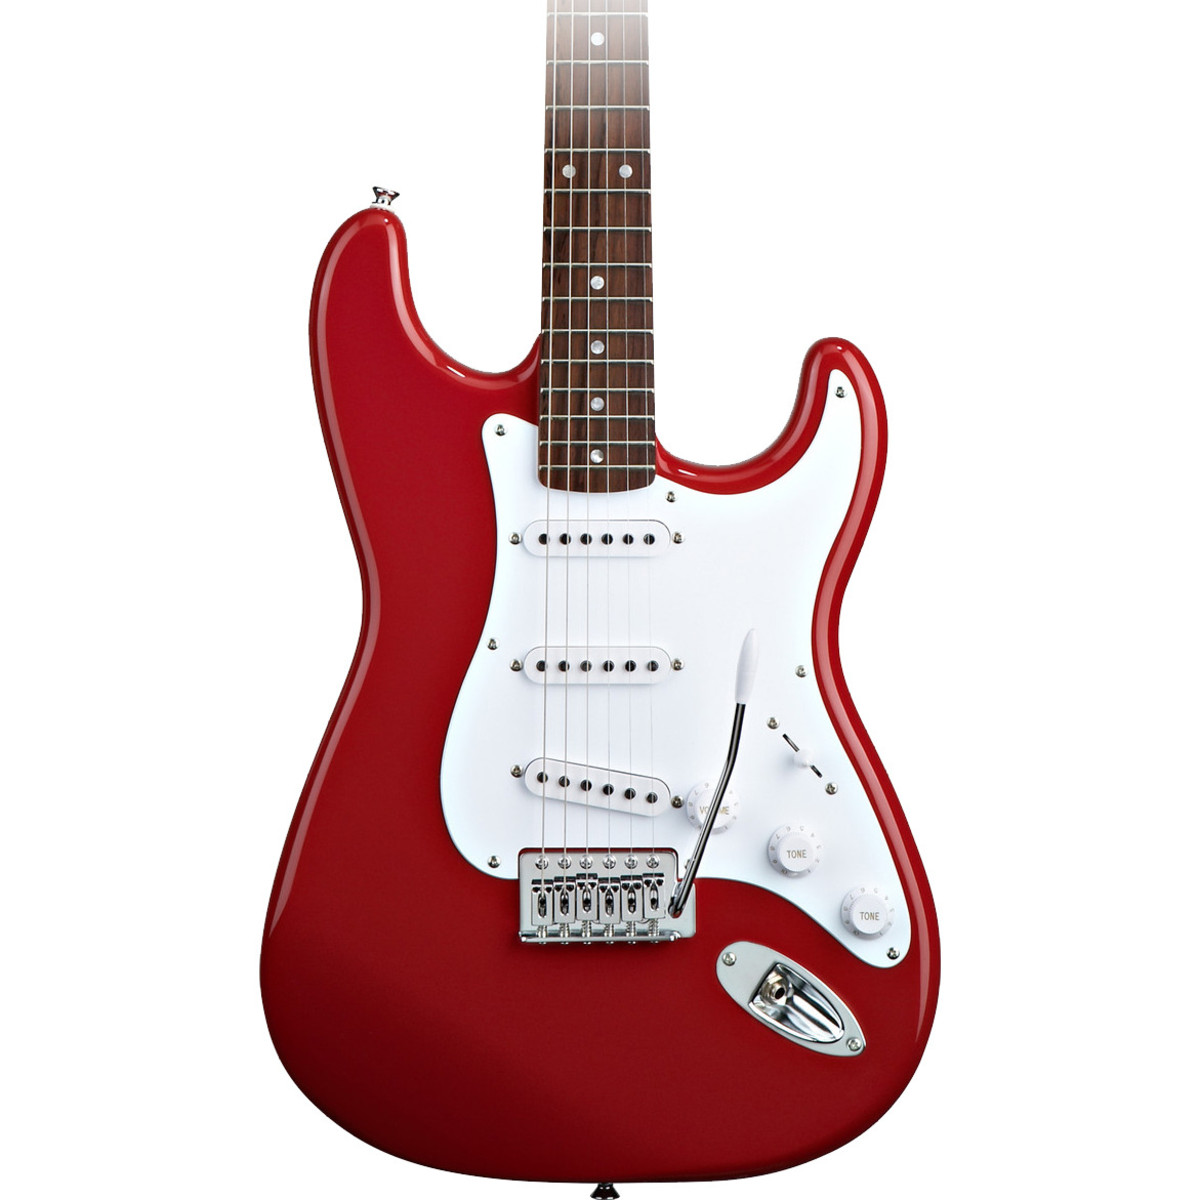 disc squier by fender stratocaster red subzero sz1250 bundle at. Black Bedroom Furniture Sets. Home Design Ideas